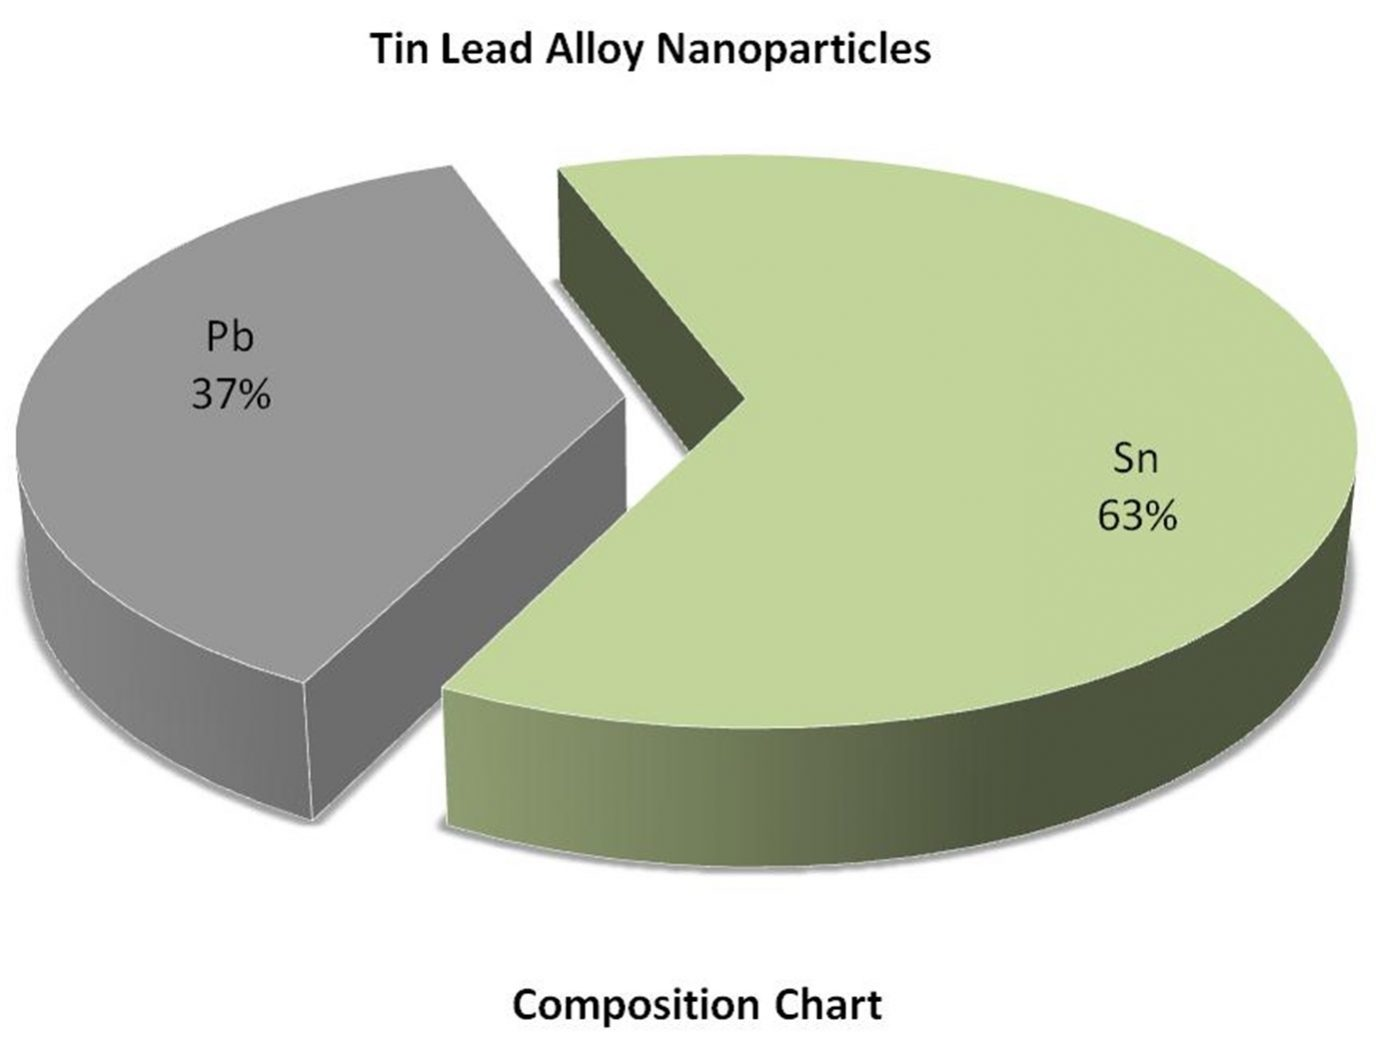 Composition Chart - Sn:Pb Alloy Nanoparticles